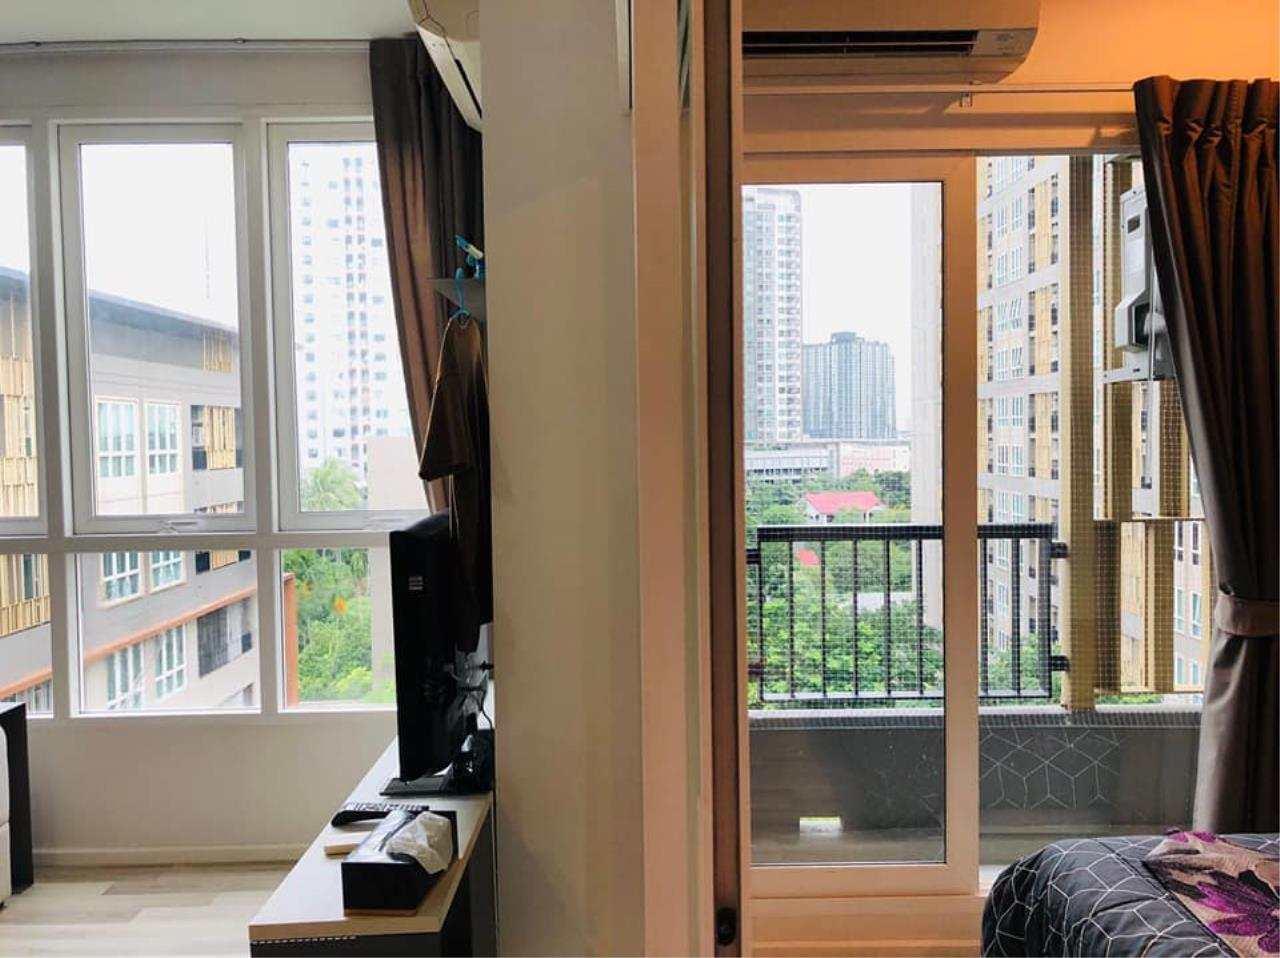 Agent - Prombood Agency's Sale - For Rent 1 Bedroom (Corner Unit) 31.95 sq.m. The Key Sathorn-Ratchapruek near Wutthakat BTS Station 5